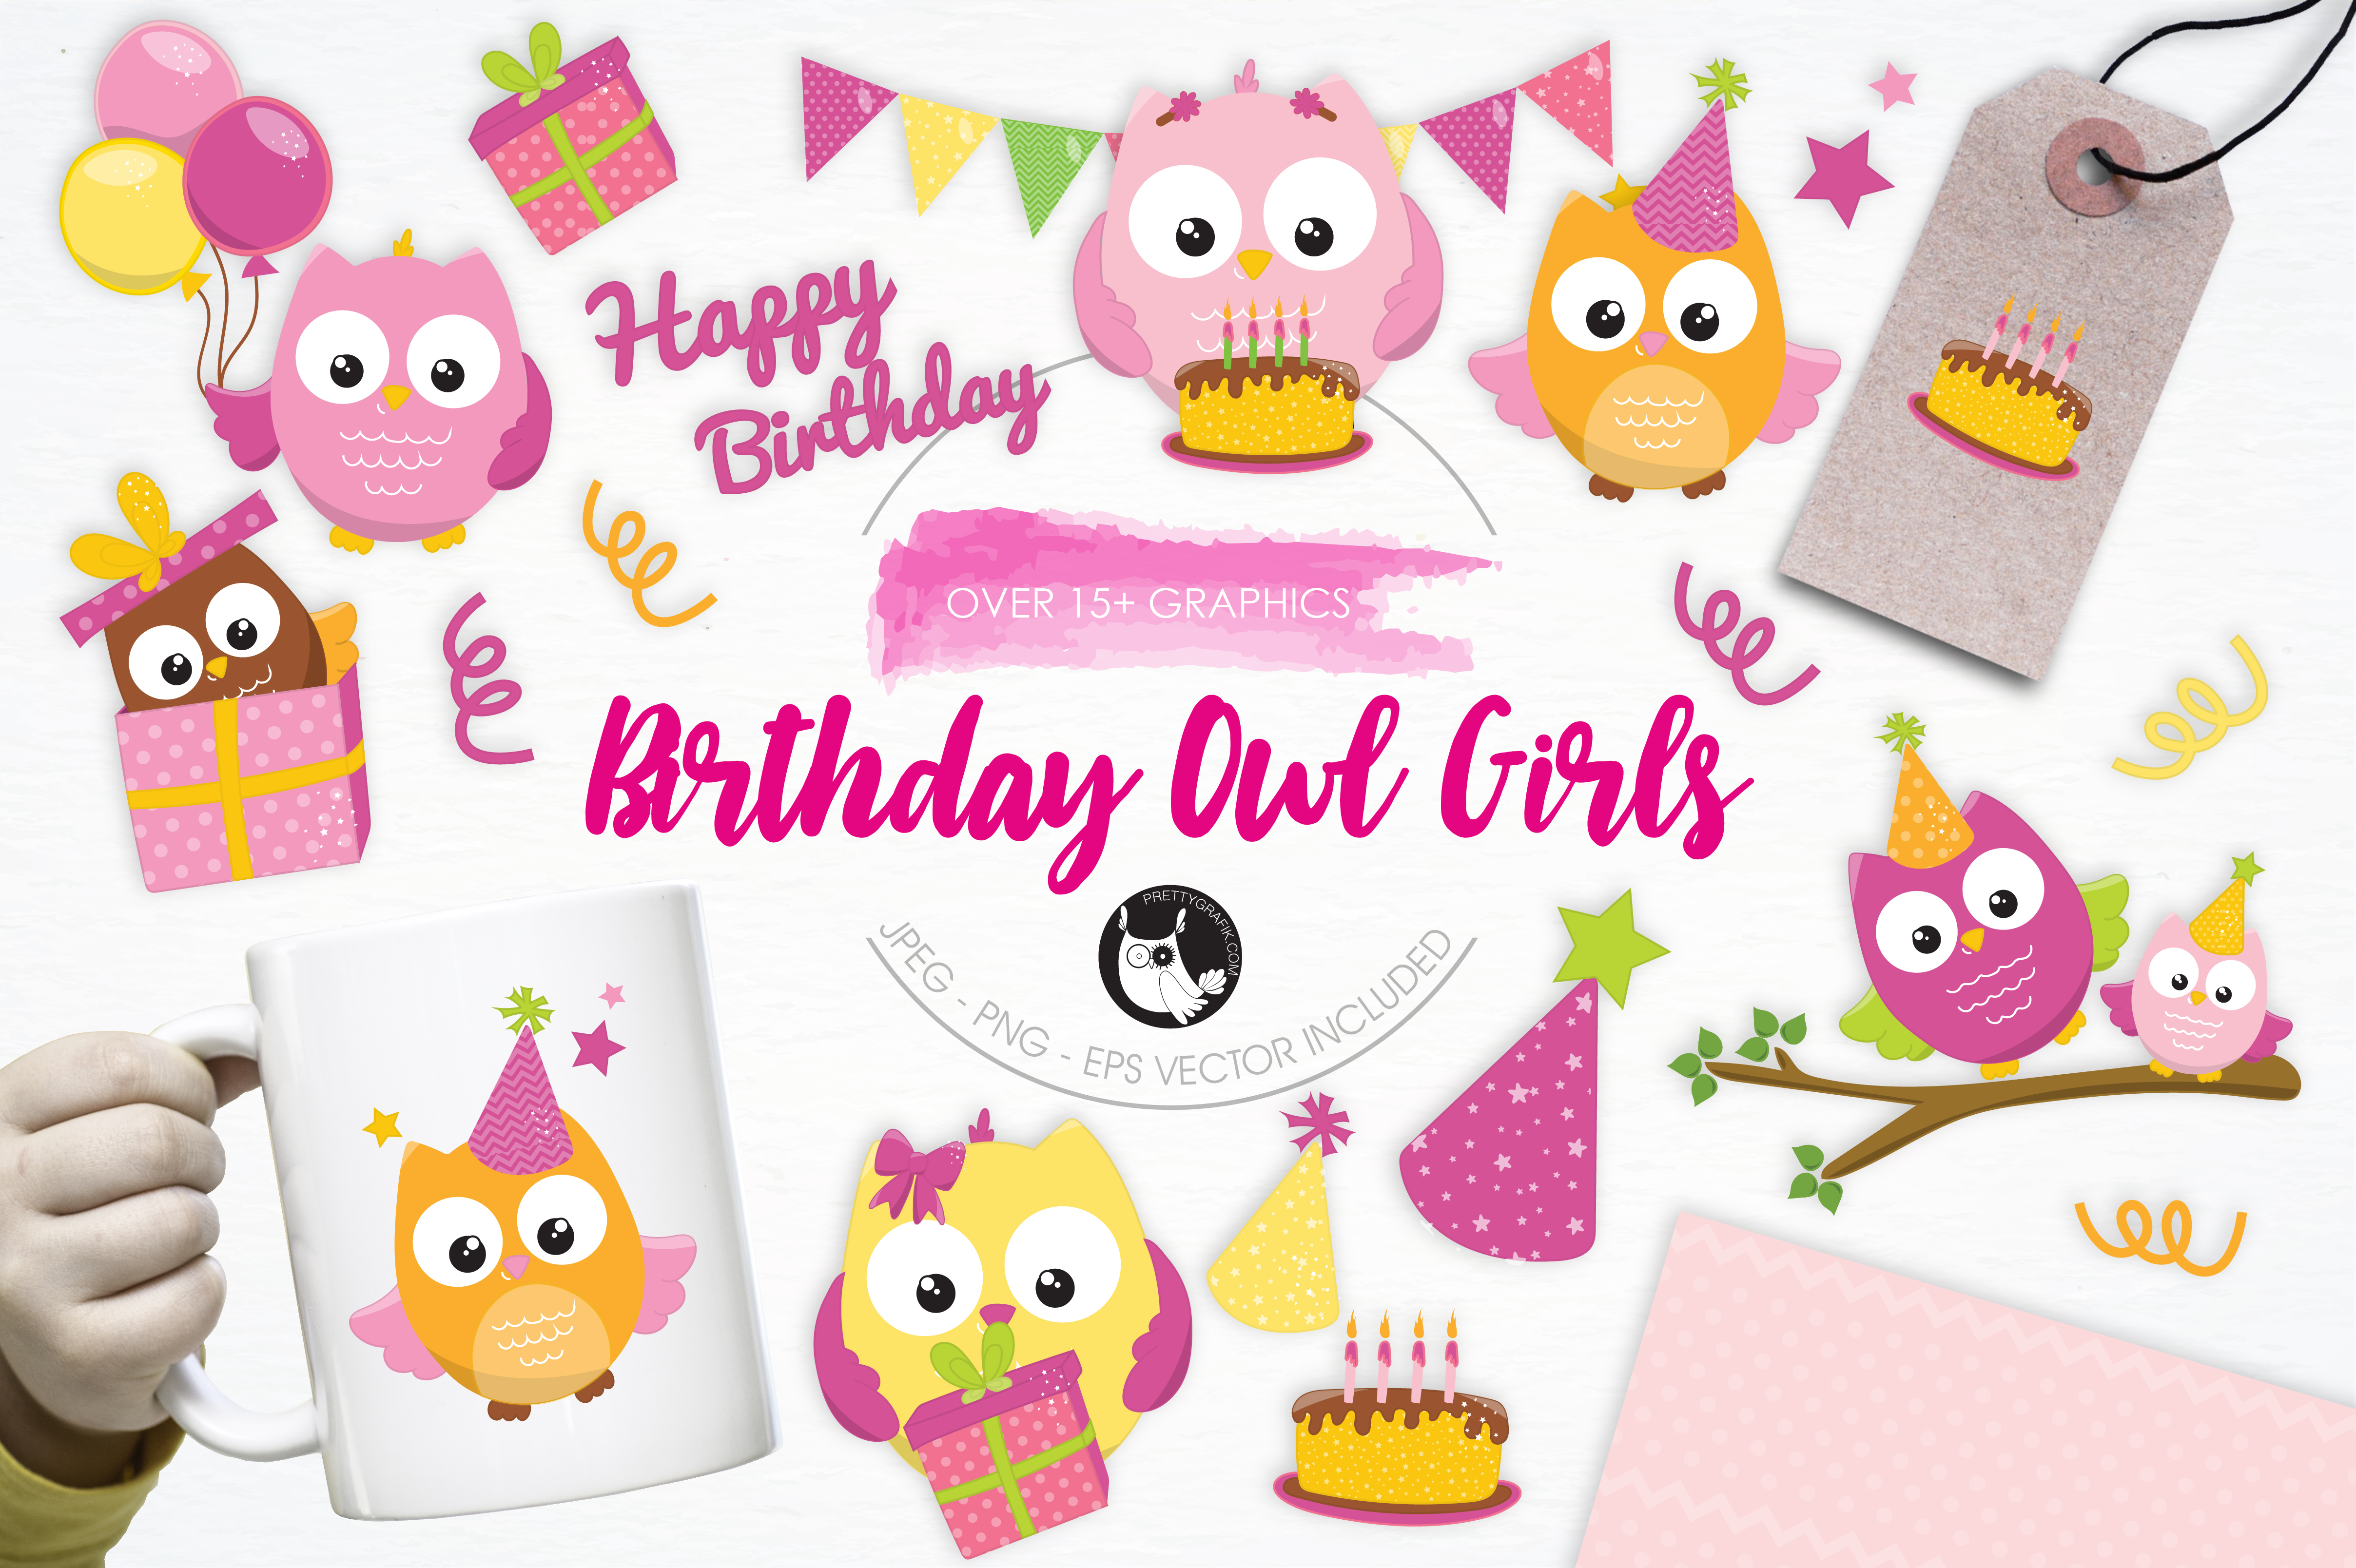 Download Free Birthday Owl Girls Graphic By Prettygrafik Creative Fabrica for Cricut Explore, Silhouette and other cutting machines.